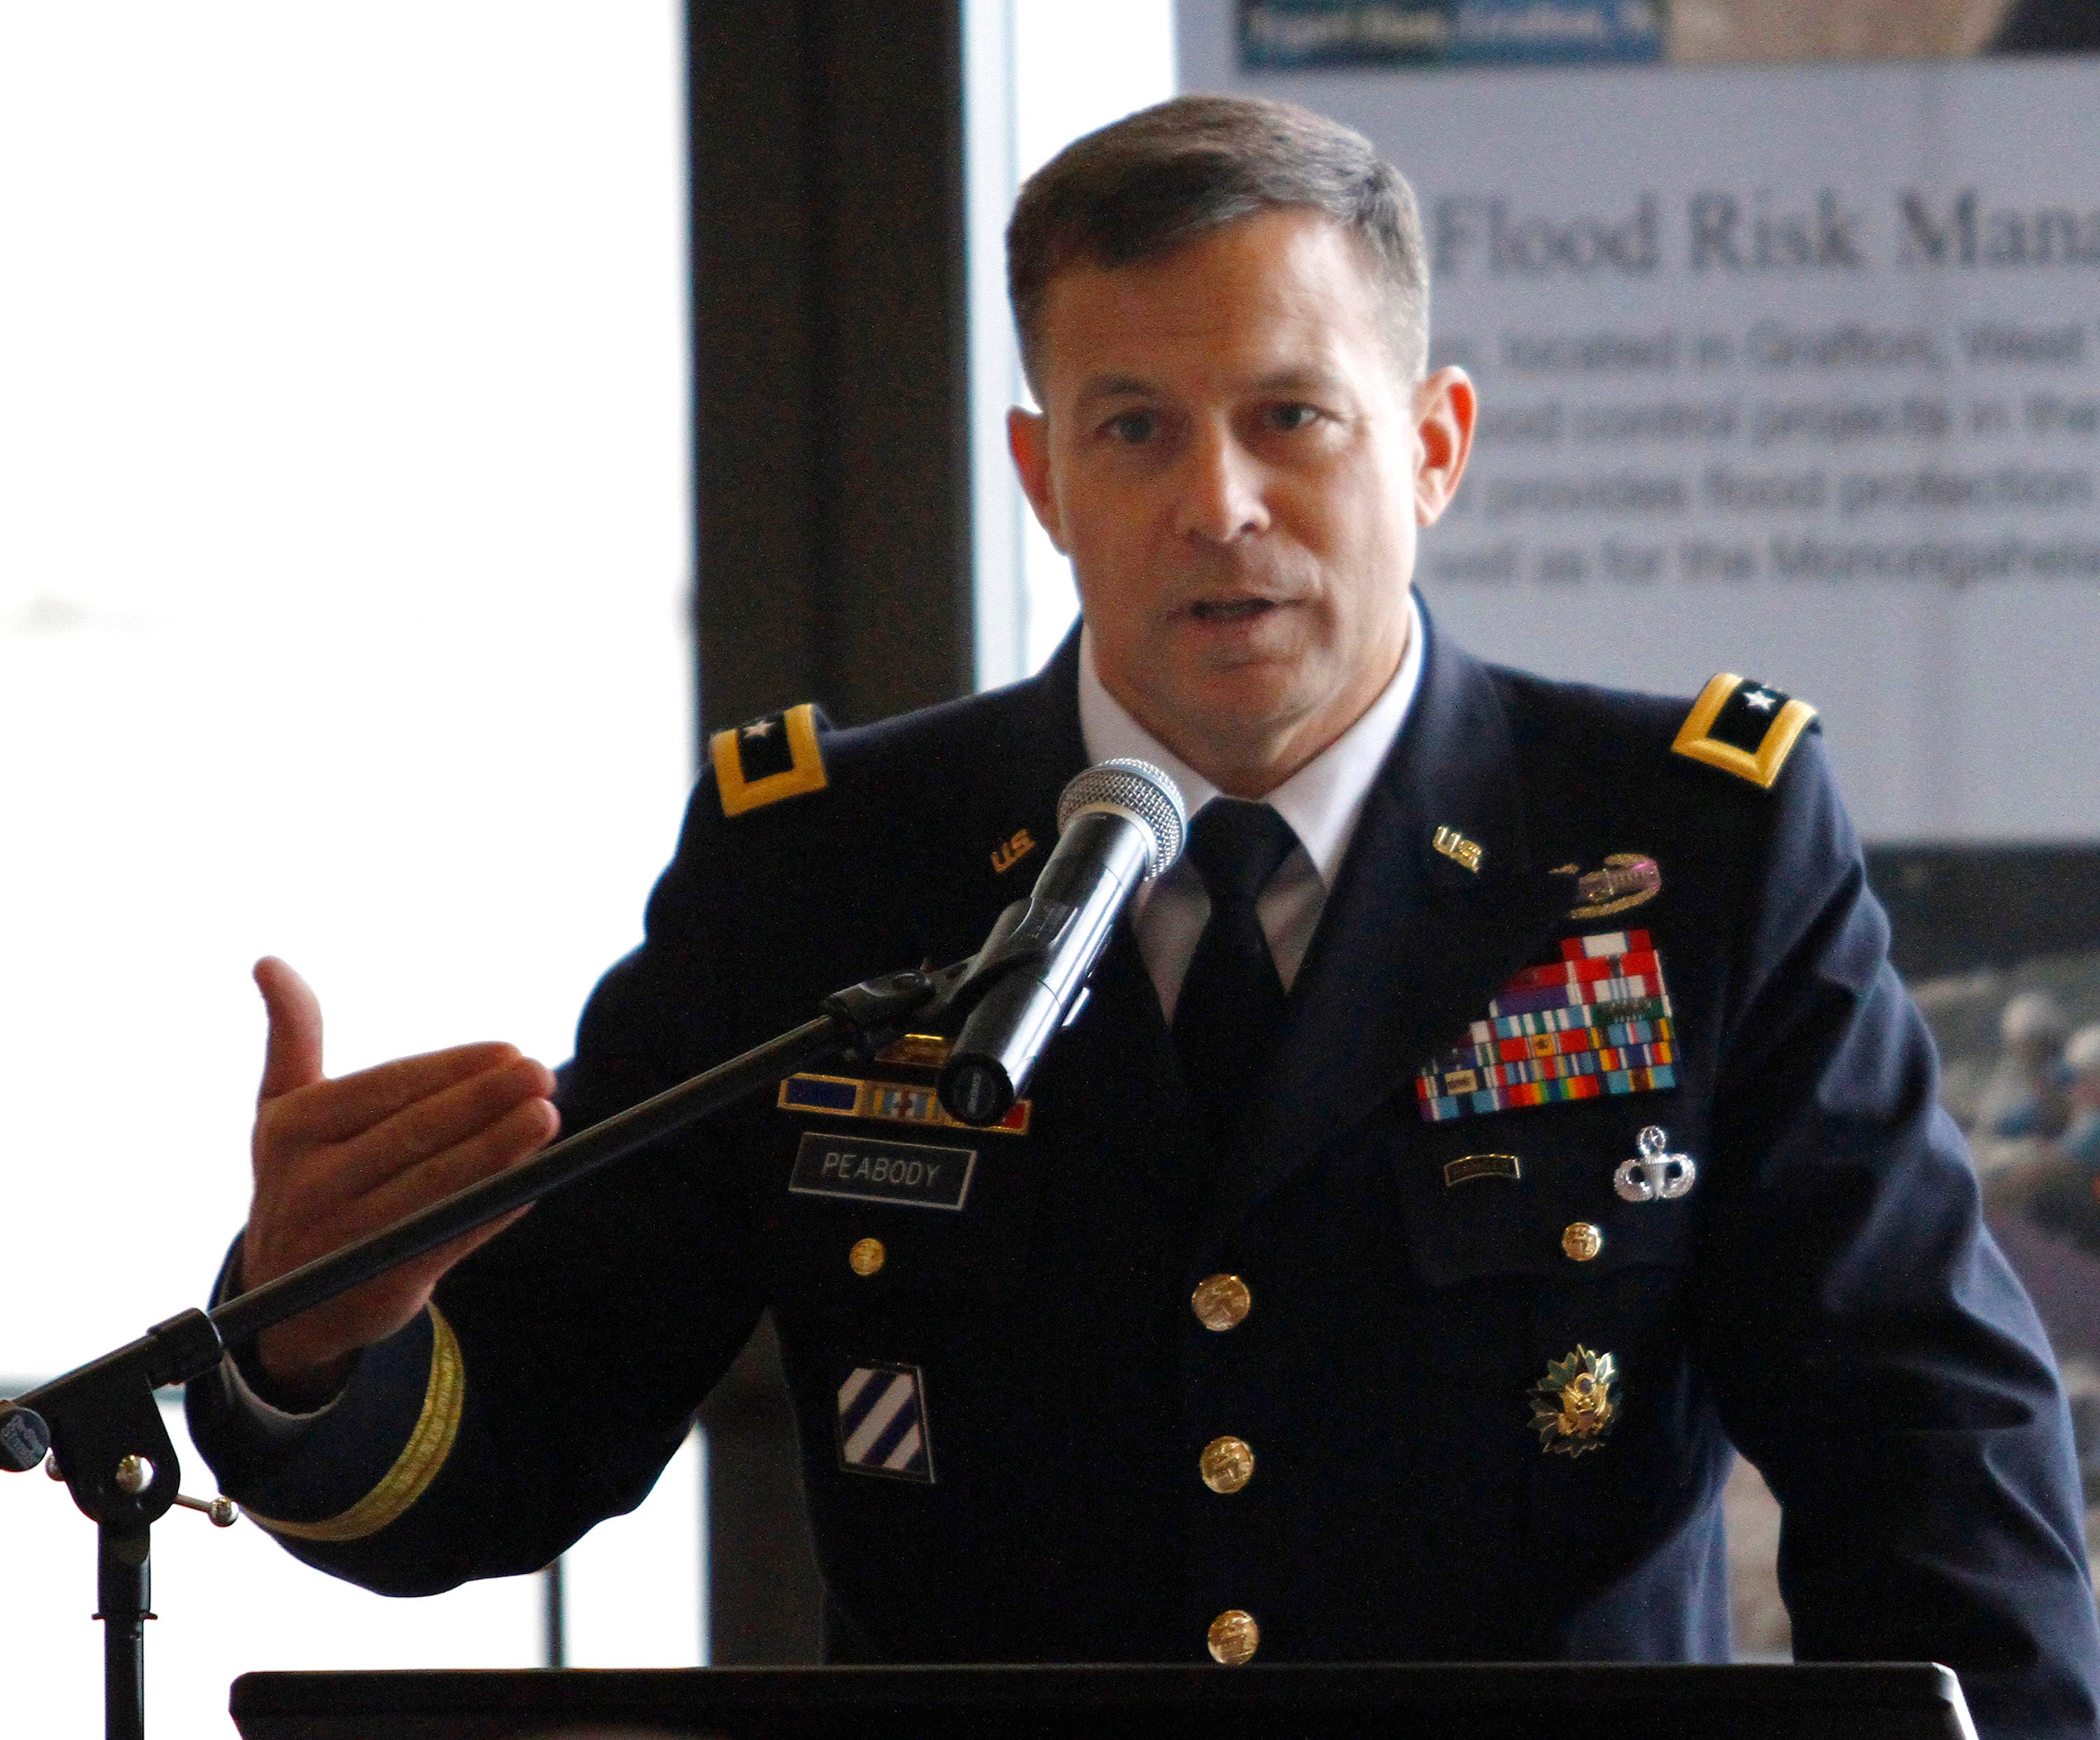 Former commander Maj. Gen. John W. Peabody makes a speech about his tenure during the change of command ceremony of the United States Army Corps of Engineers Great Lakes and Ohio River Division at the National Underground Railroad Freedom Center Museum in downtown Cincinnati, on Monday, Sept. 19, 2011.